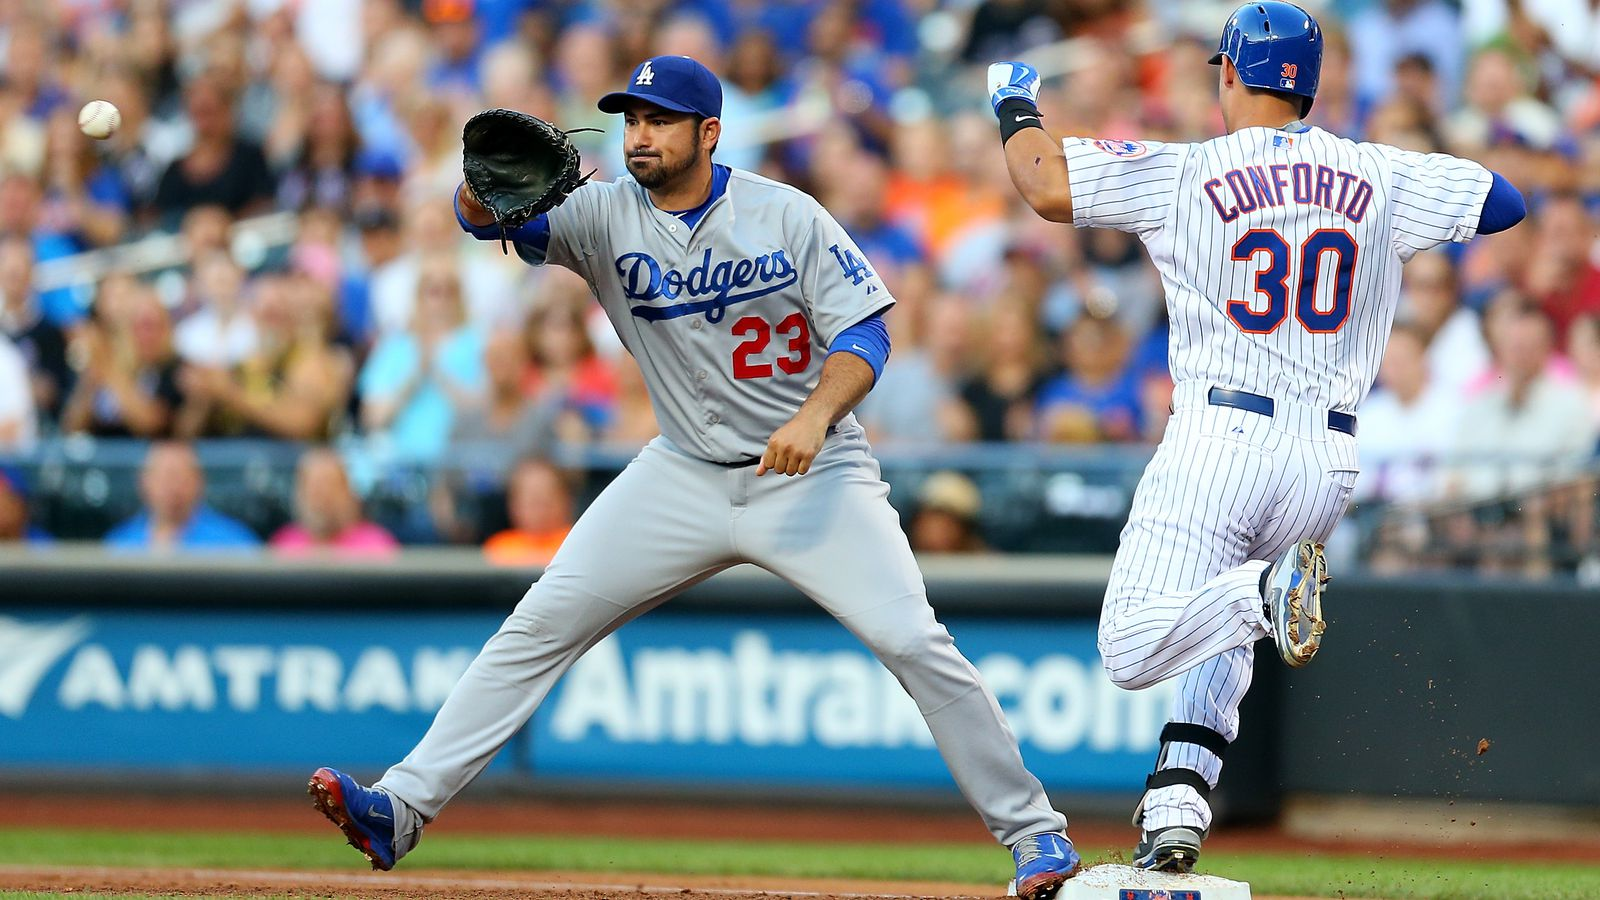 Dodgers will play Mets in NLDS